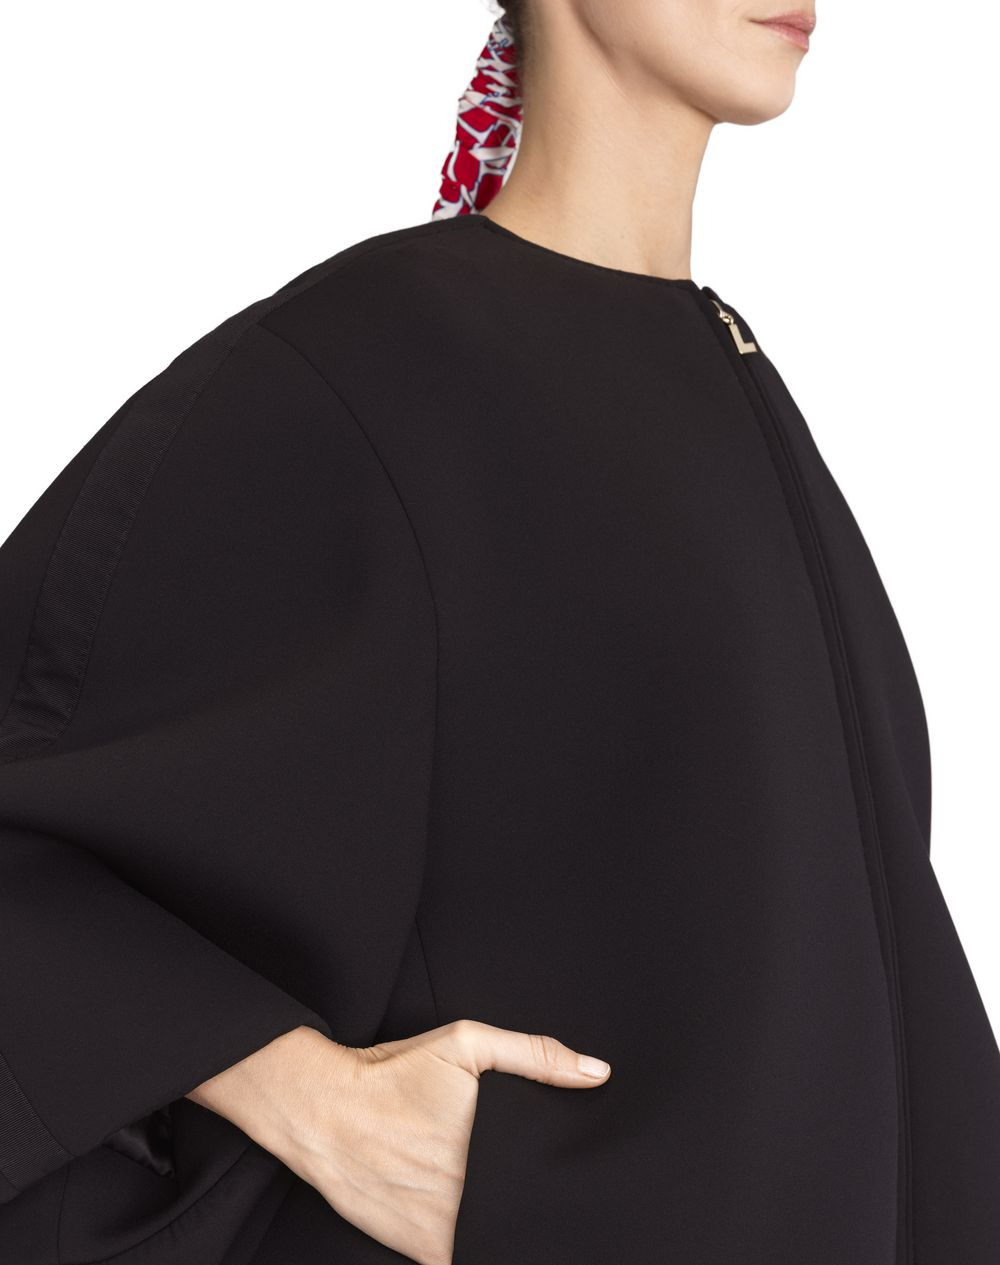 NEOPRENE BALLOON COAT - Lanvin